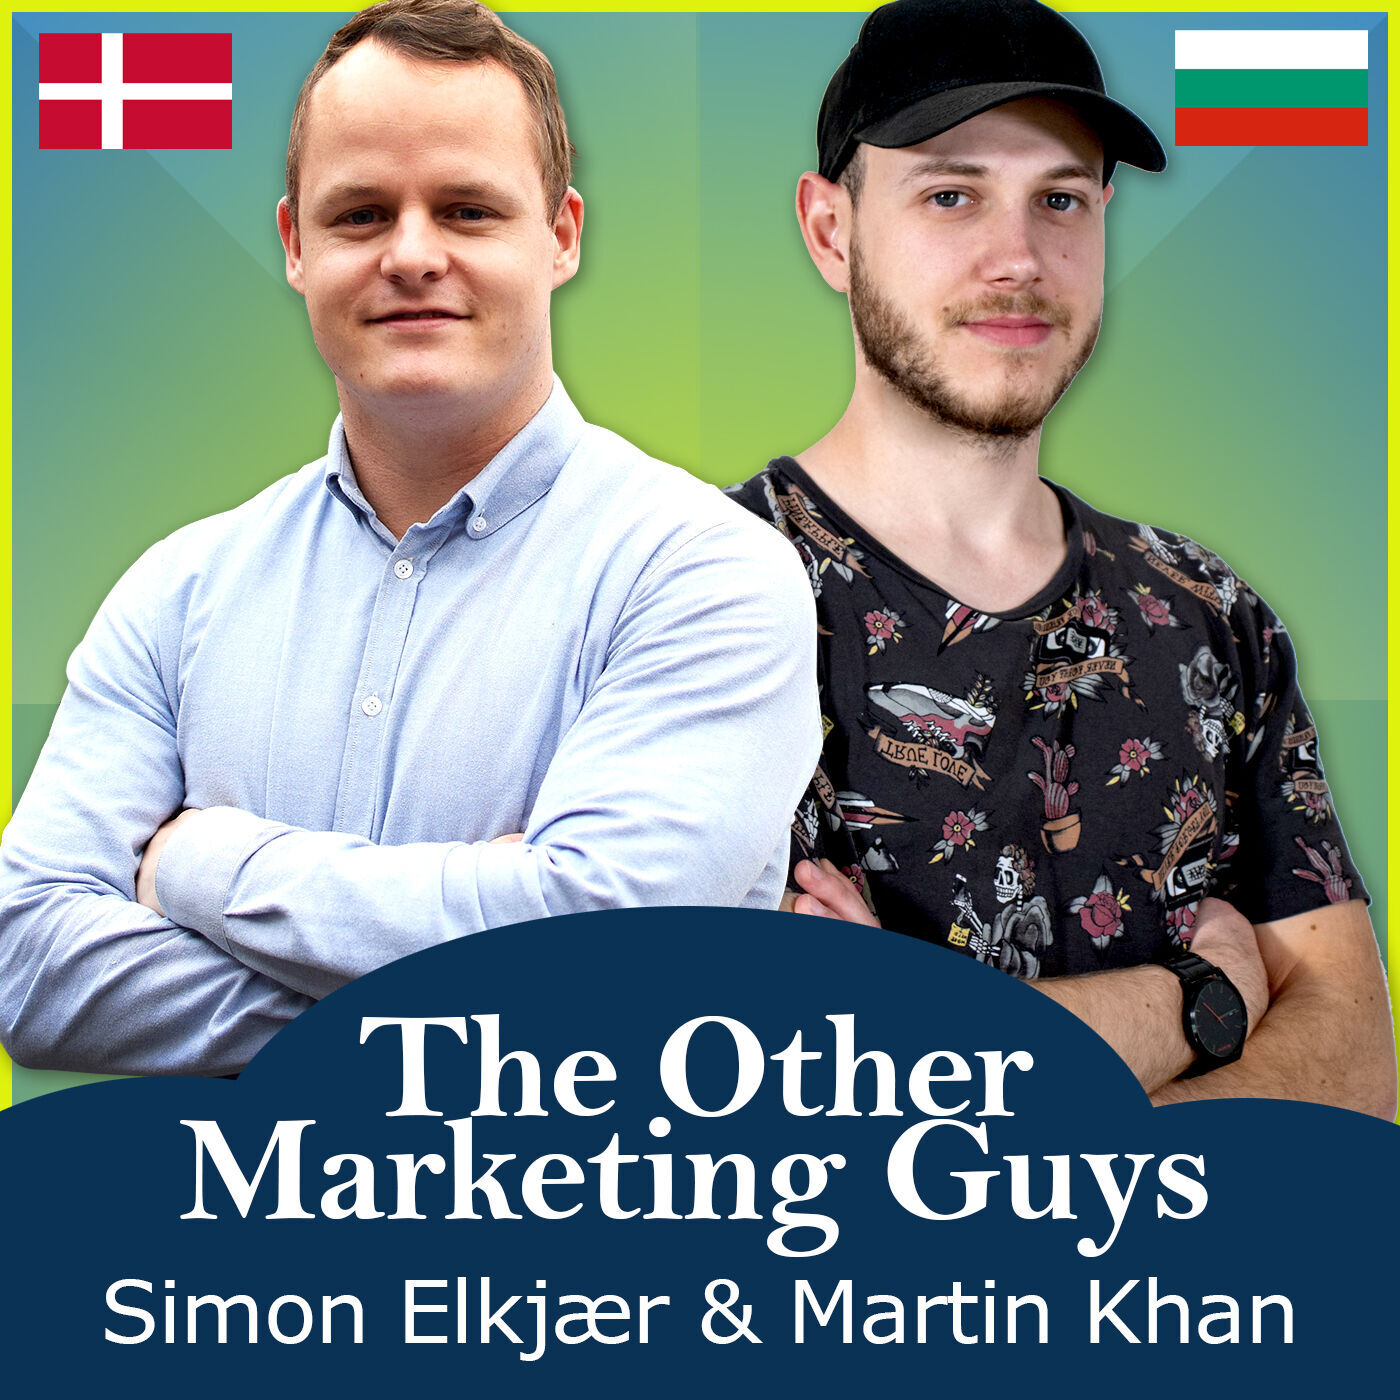 The Other Marketing Guys